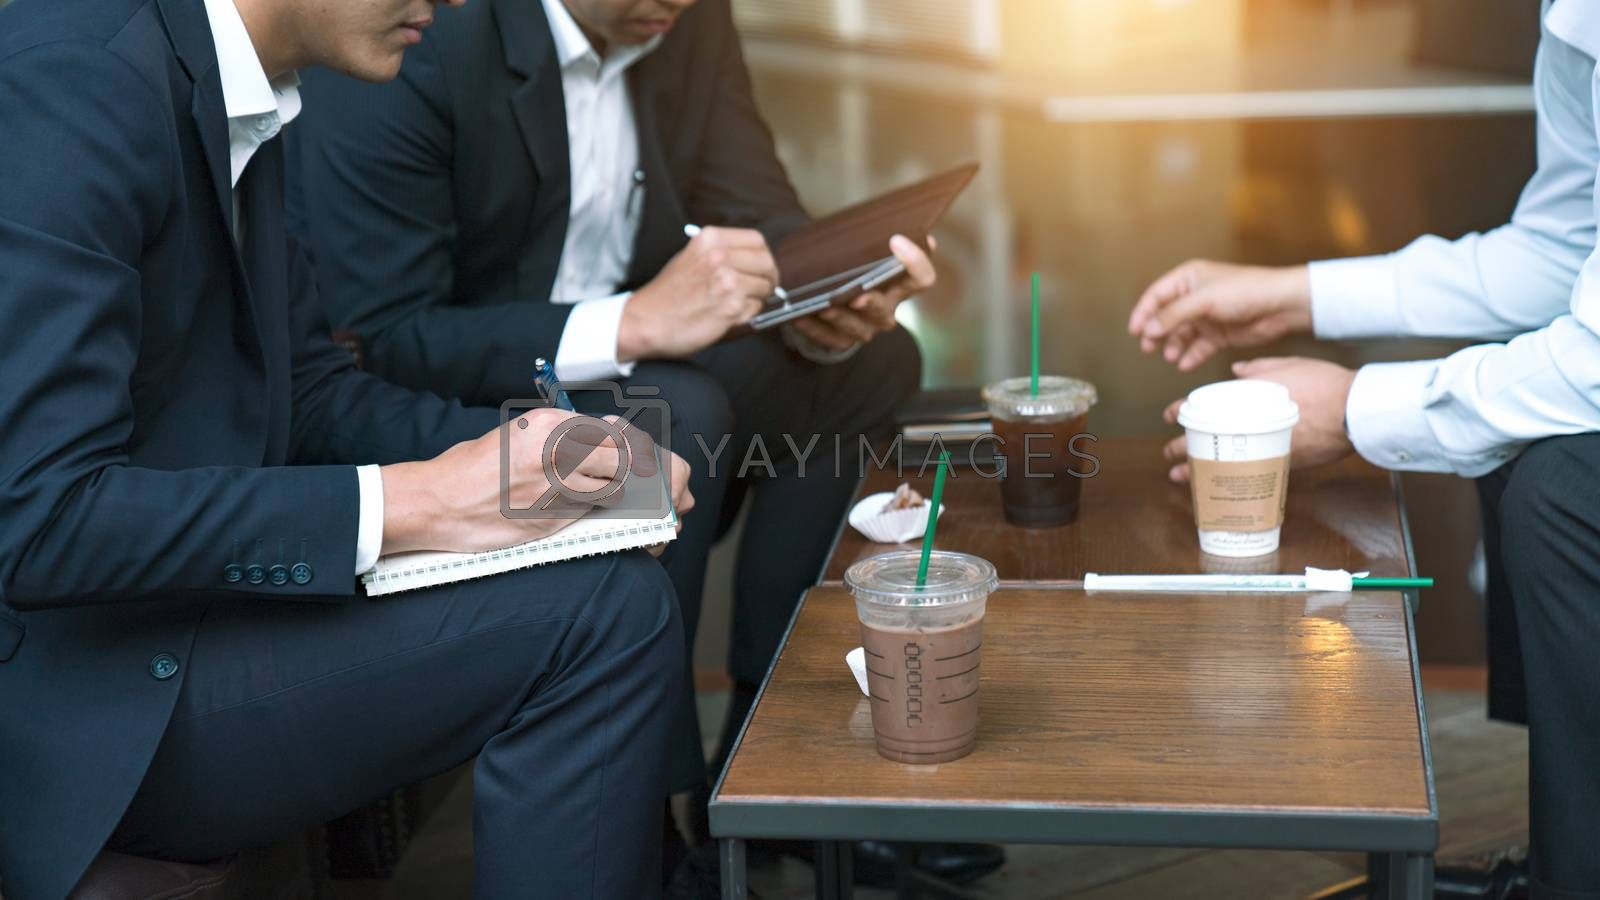 Businessmen offer sales to impress customers at coffee shops.